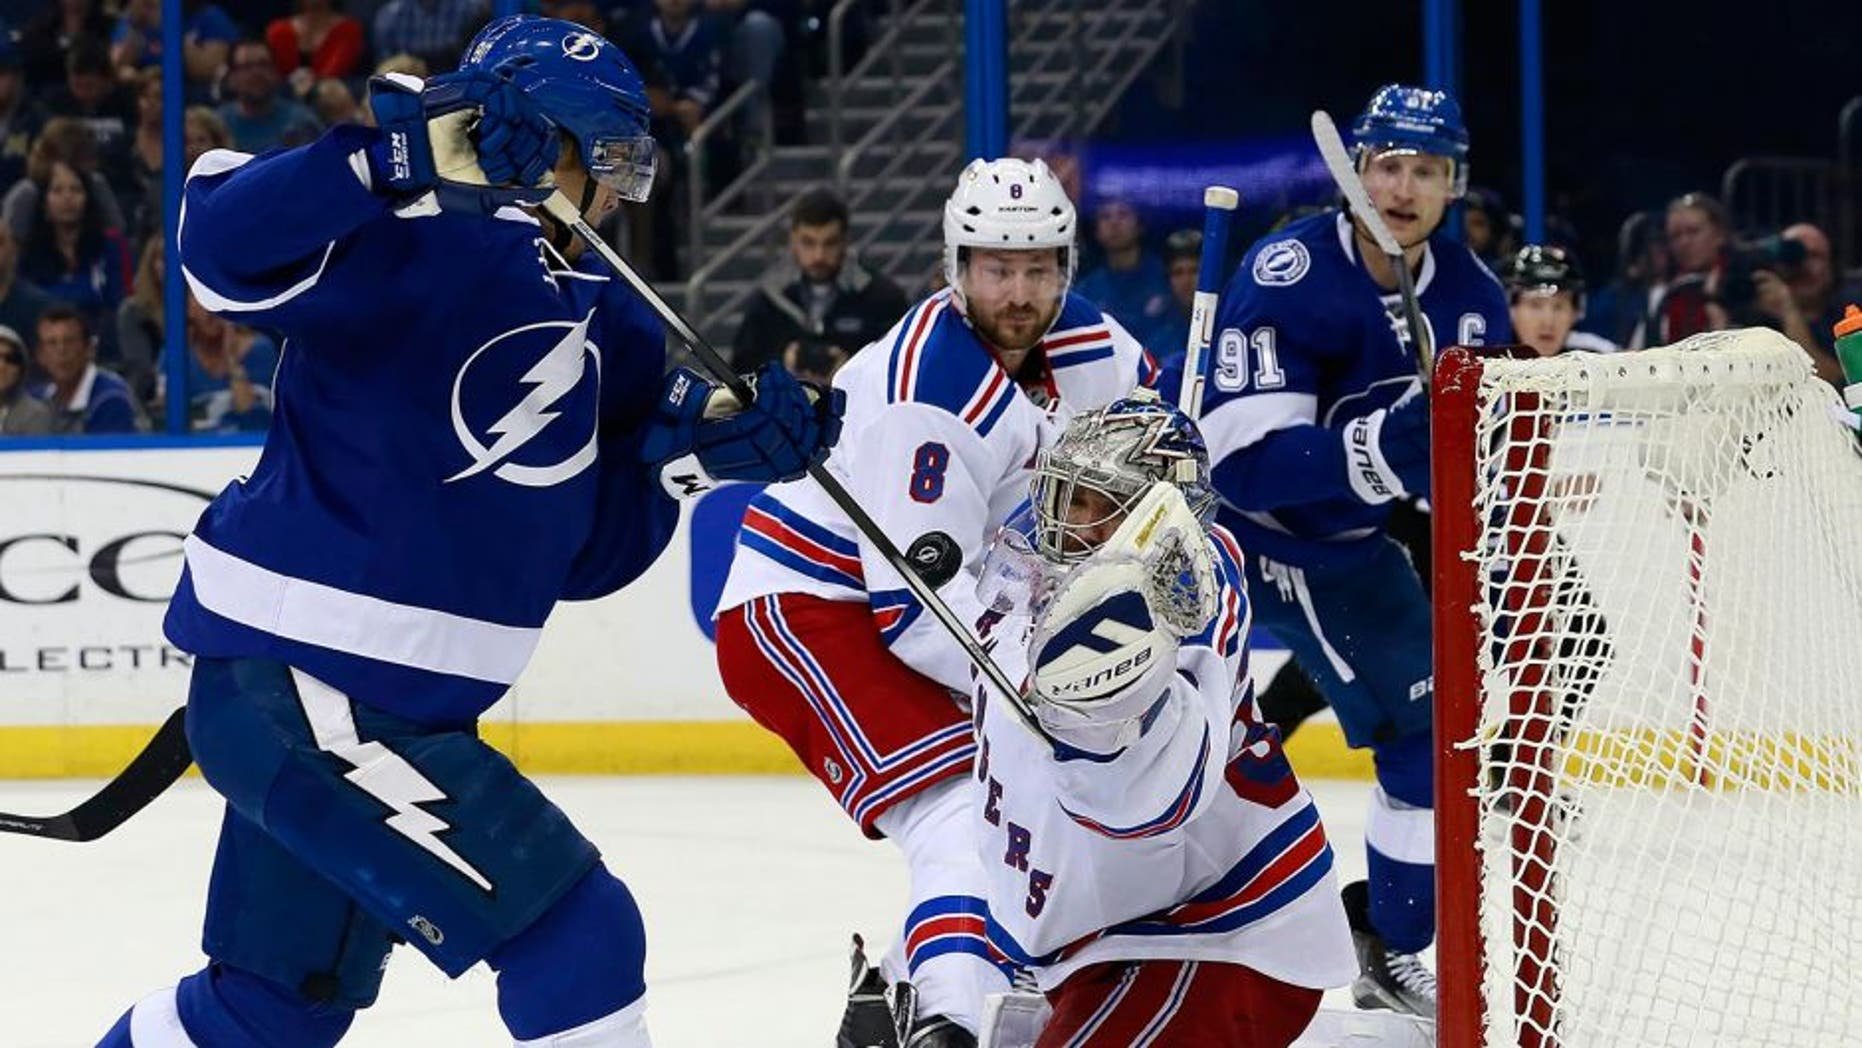 Dec 30, 2015; Tampa, FL, USA; New York Rangers goalie Henrik Lundqvist (30) makes a save from Tampa Bay Lightning center Vladislav Namestnikov (90) during the second period at Amalie Arena. Mandatory Credit: Kim Klement-USA TODAY Sports